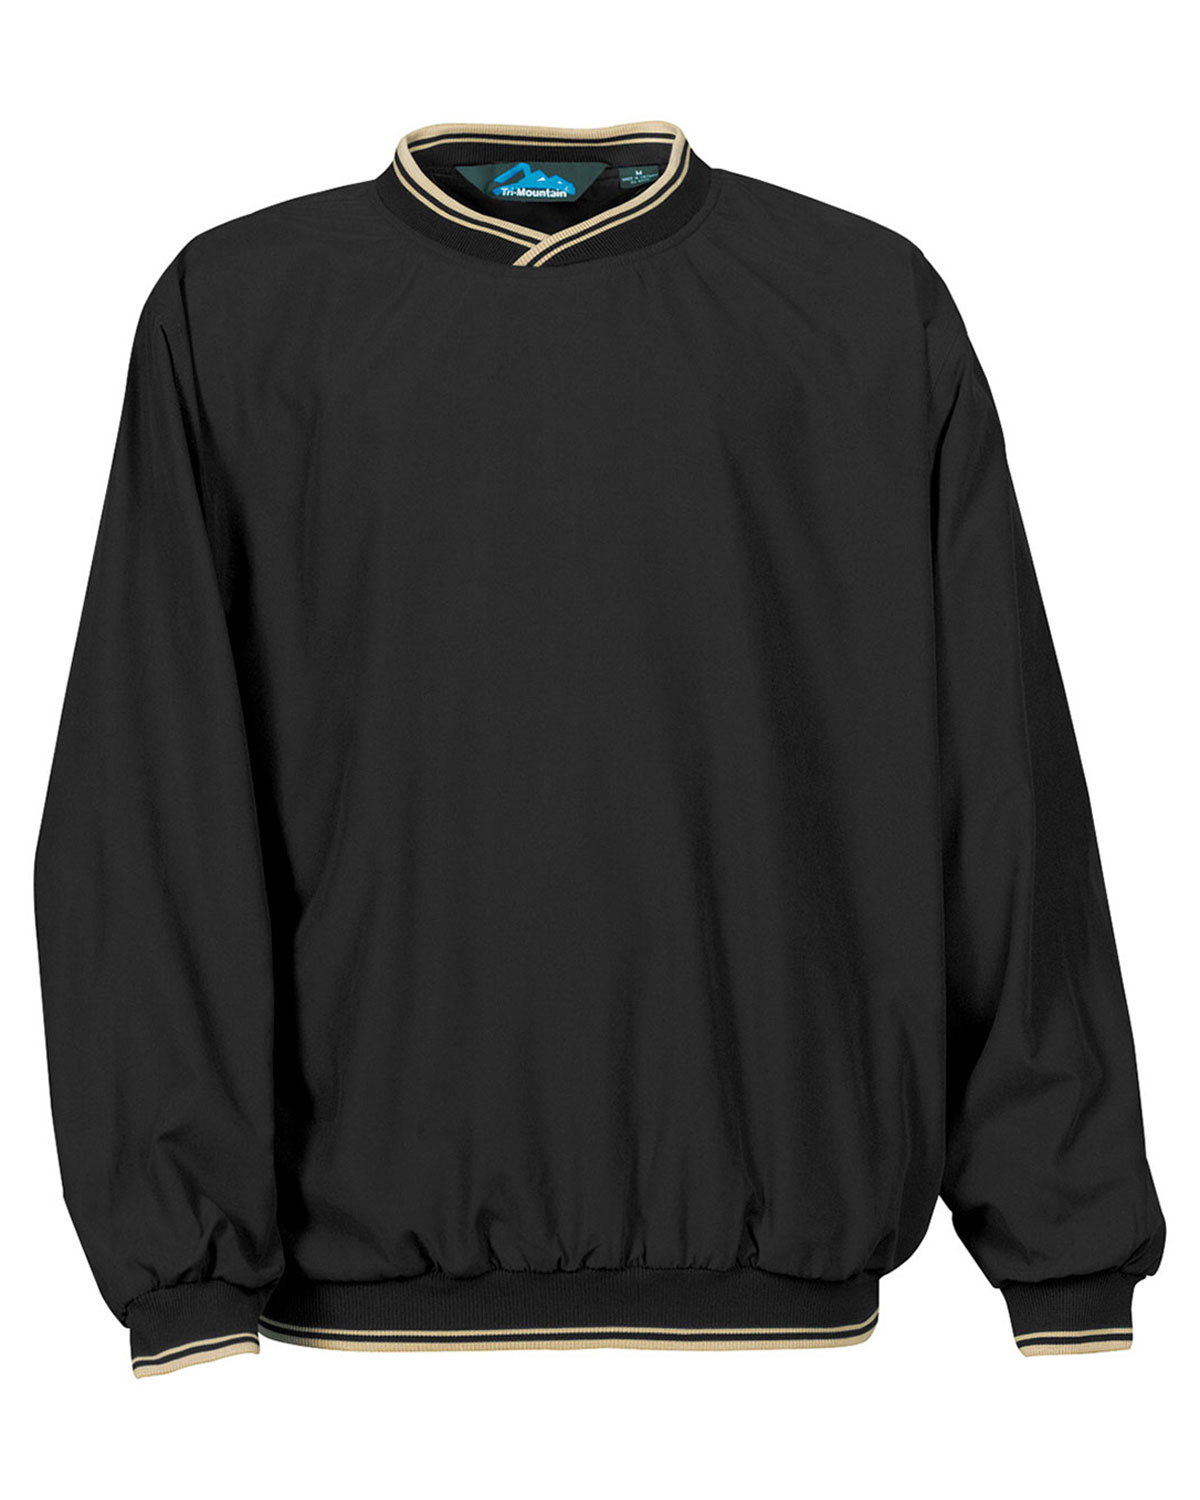 Mens Pullover Windbreaker Jackets &amp Windshirts - GotApparel